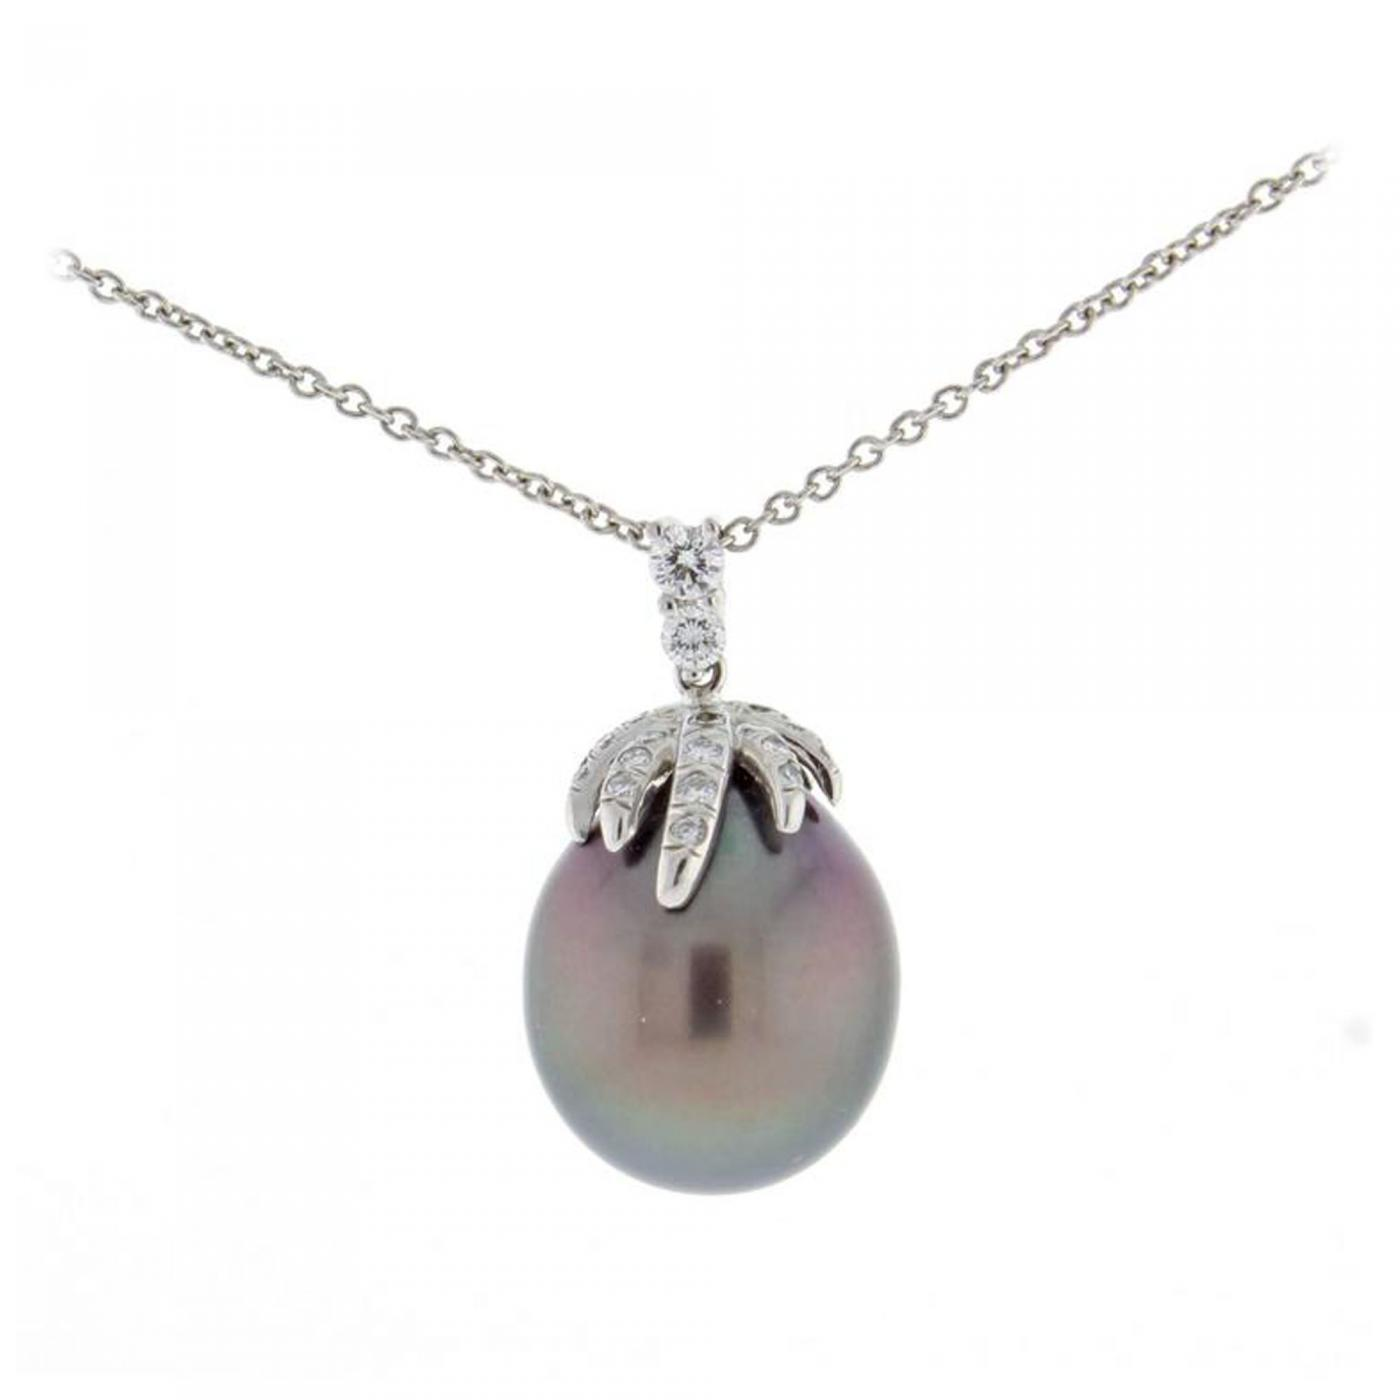 cultured zm kay necklace kaystore sterling zoom mv silver en diamonds pearl hover tw ct to diamond